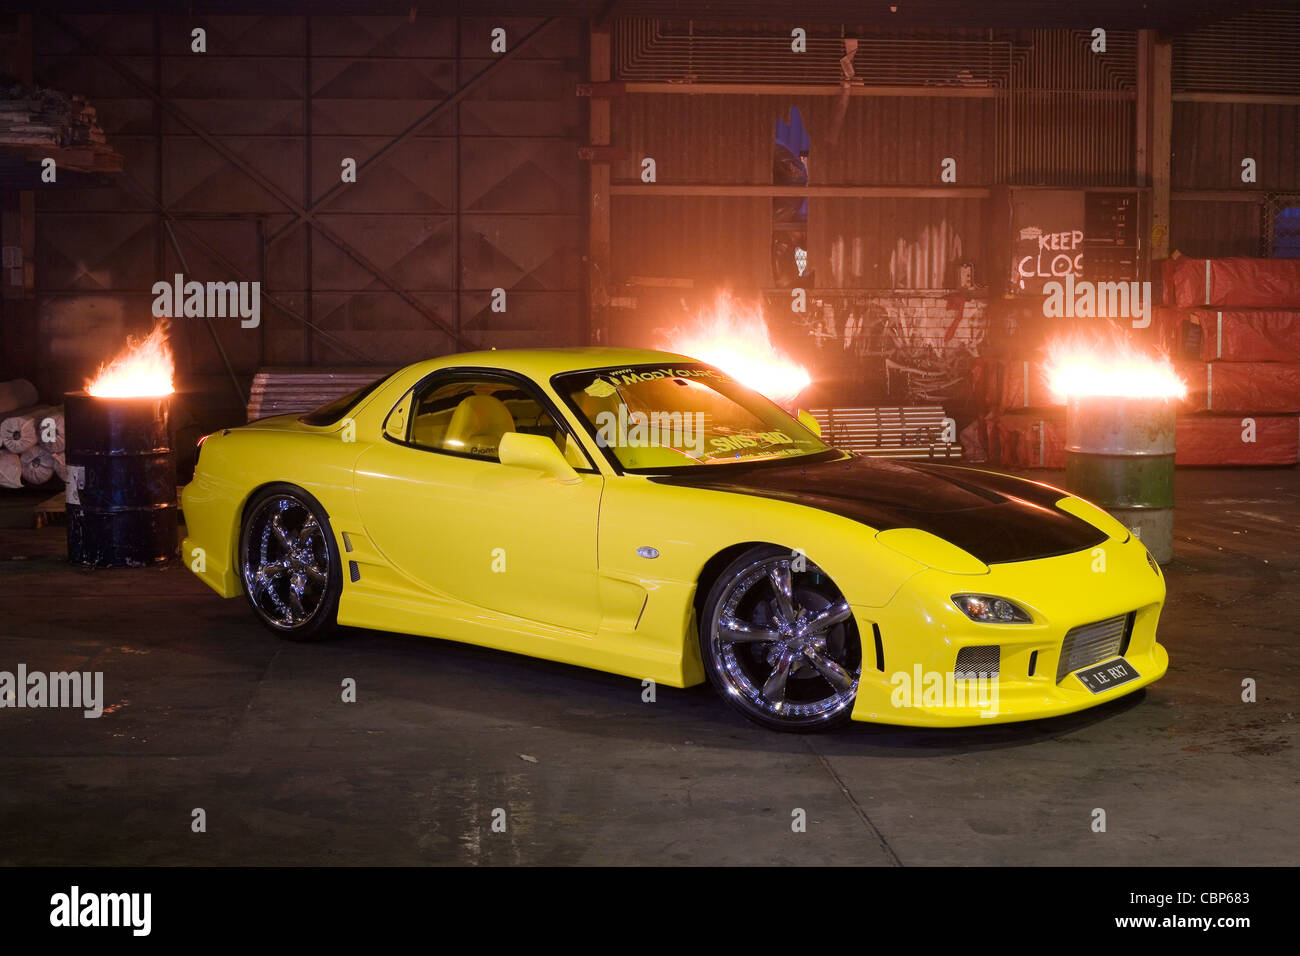 Modified Series VI FD3S Mazda RX7 Rotary Engined Japanese Sports Car    Stock Image